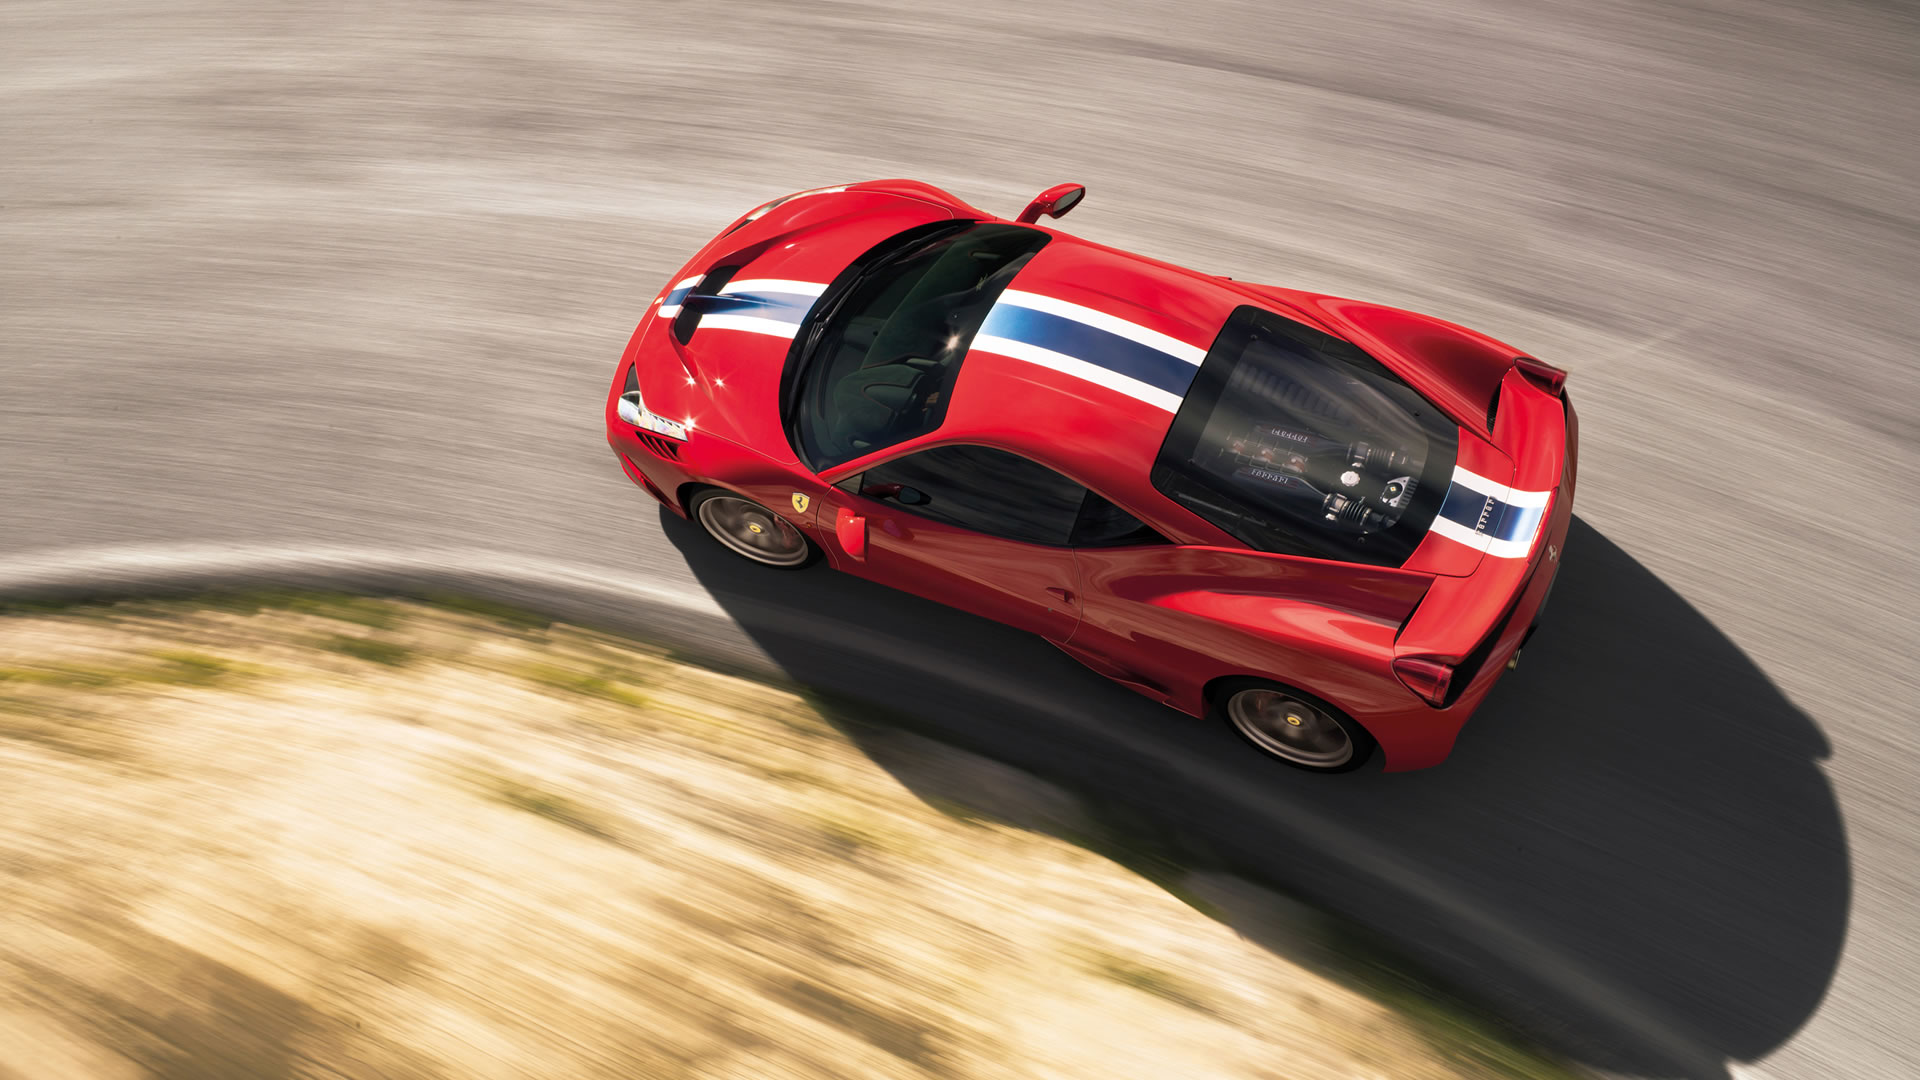 2014 Ferrari 458 Speciale Wallpaper 1920 X 1080 Rosso Corsa Color Elevated View Rssportscars Com